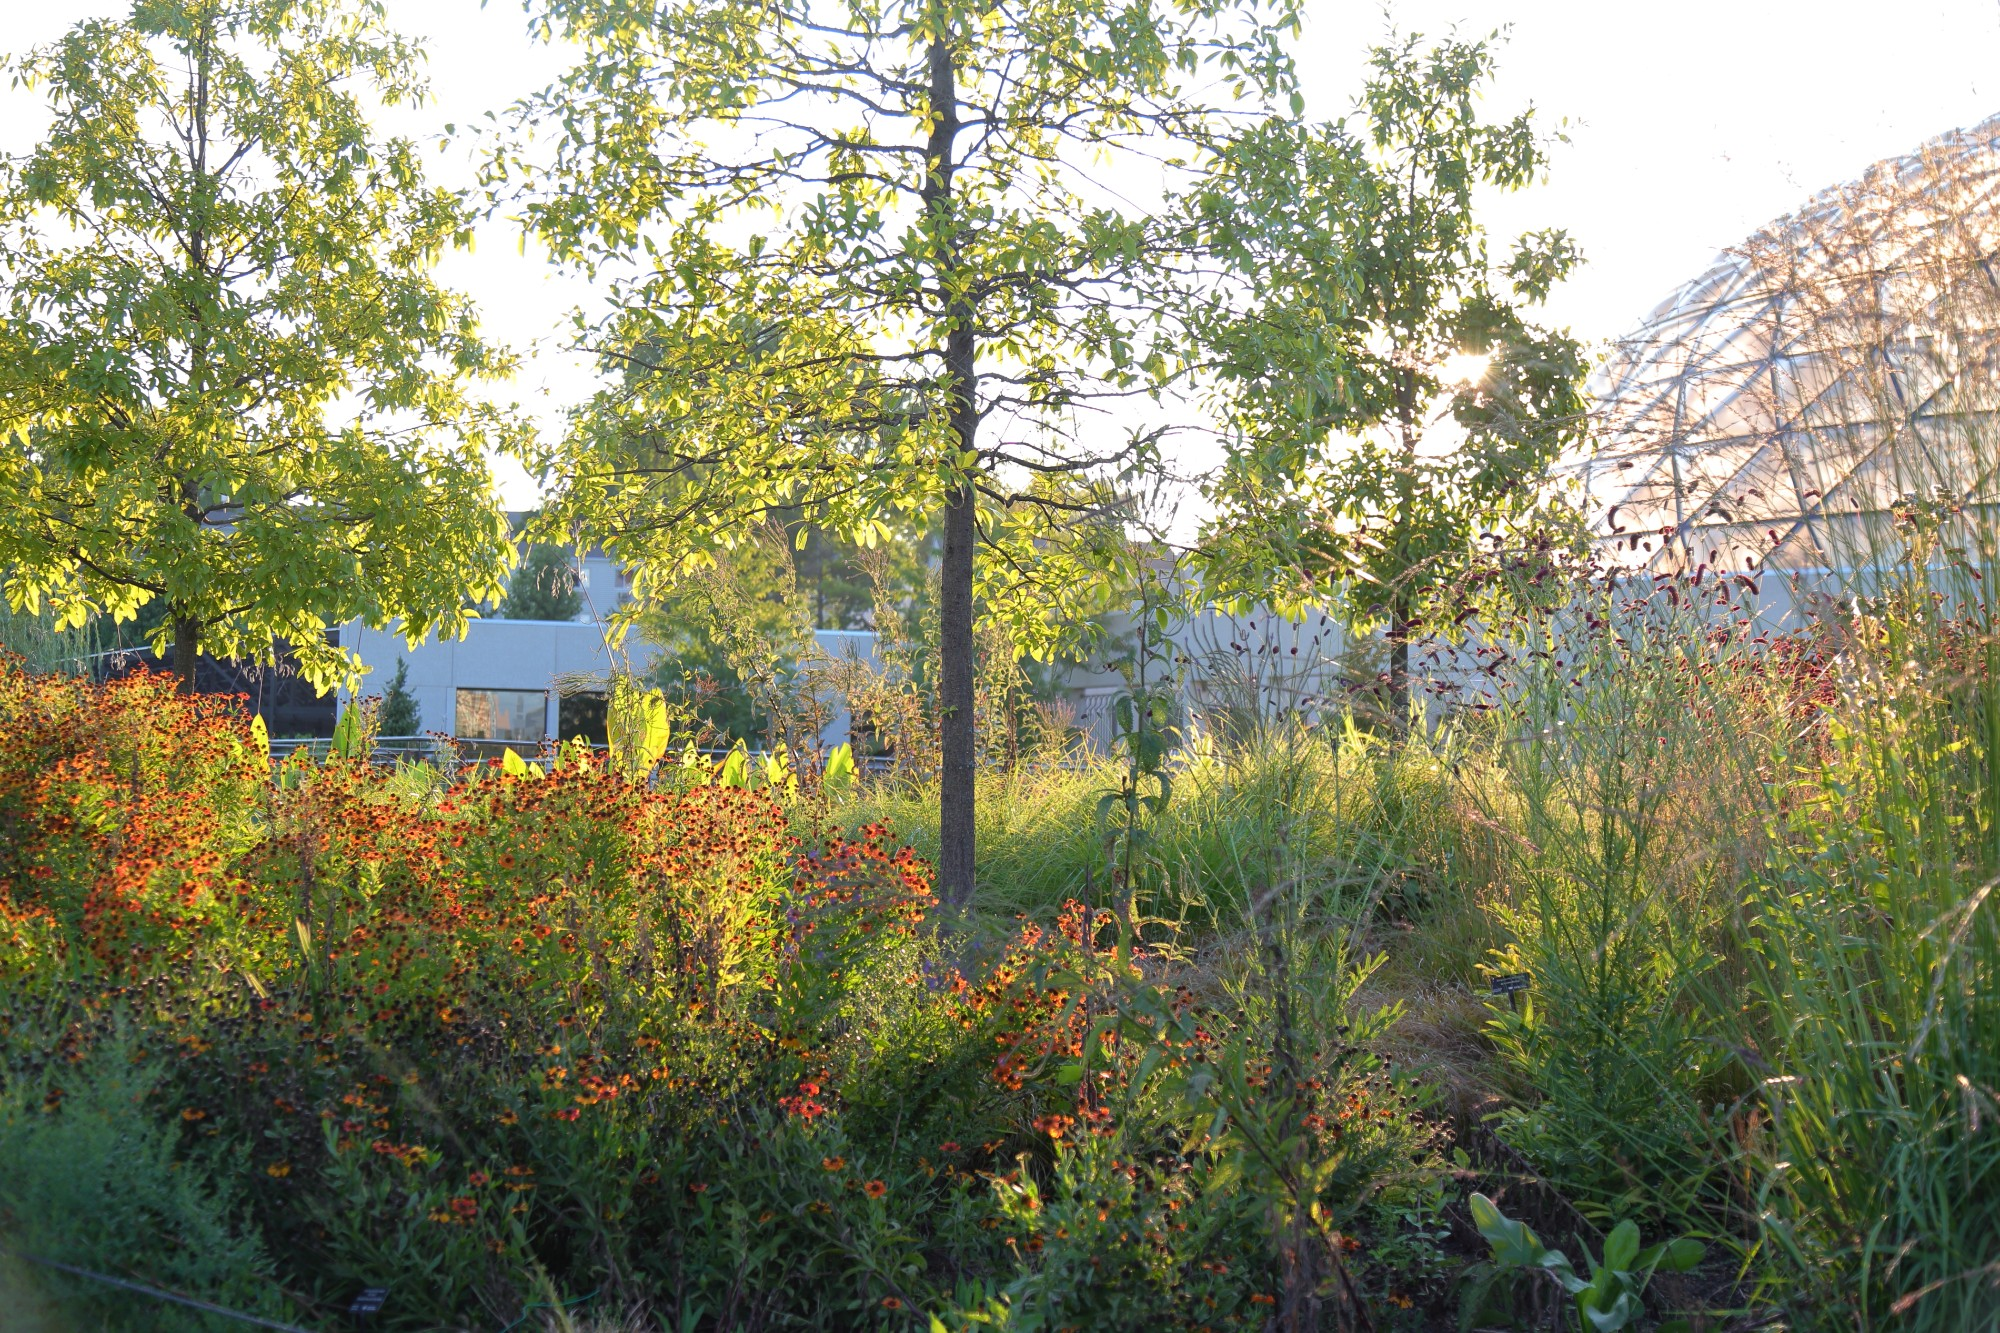 Morning light coming through the oaks in the Lauridsen Savanna, Sept. 2. Photo by Kelly Norris.